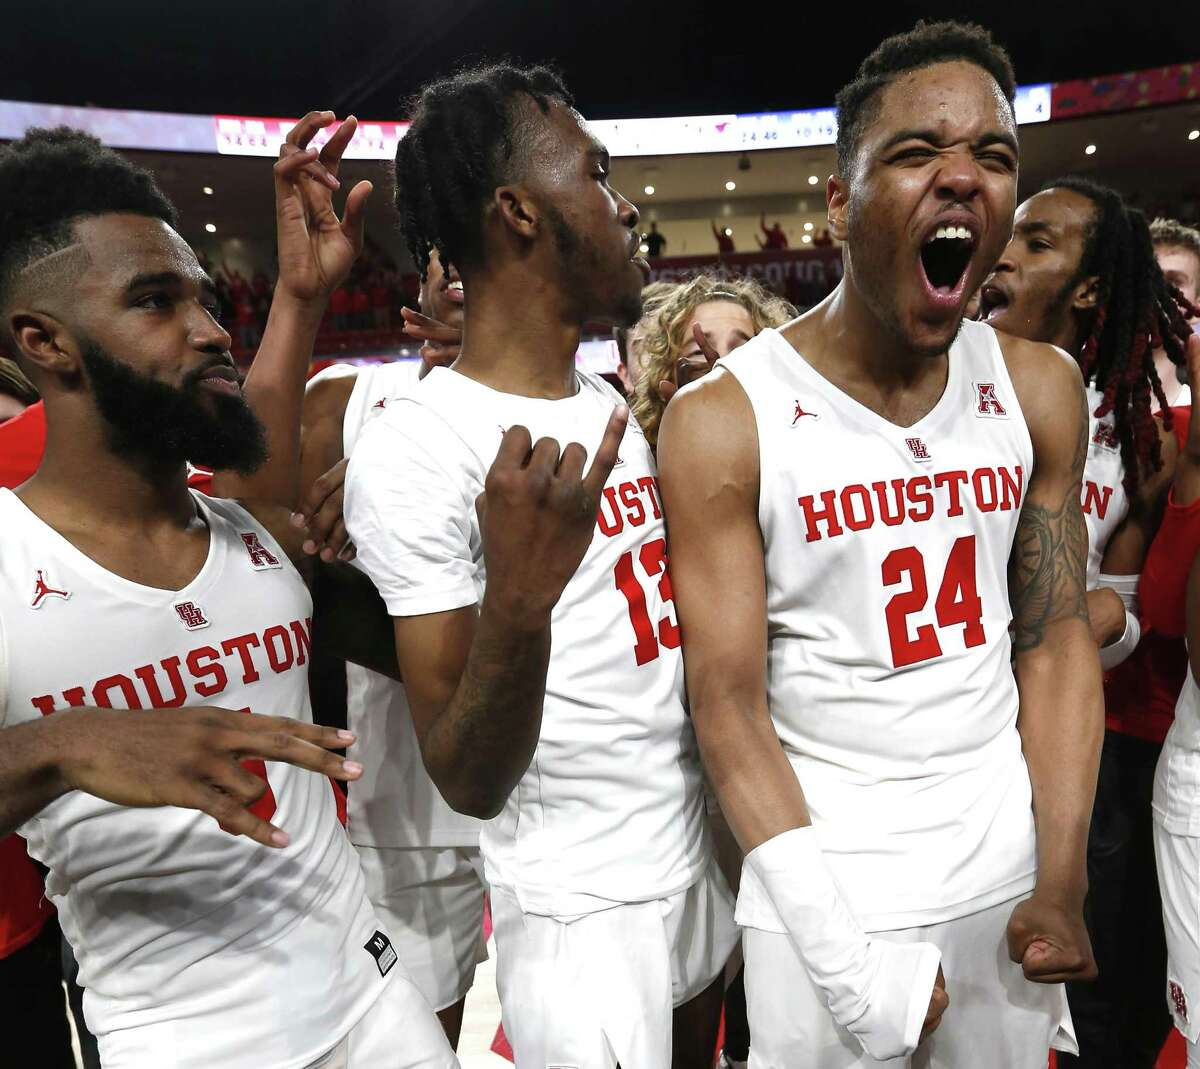 UH's Corey Davis Jr., from left, Dejon Jarreau and Breaon Brady hope their Tulsa time will be a good one. The Cougars begin NCAA Tournament play there against Georgia State at 6:20 p.m. Friday, with the survivor taking on the winner of Iowa State-Ohio State